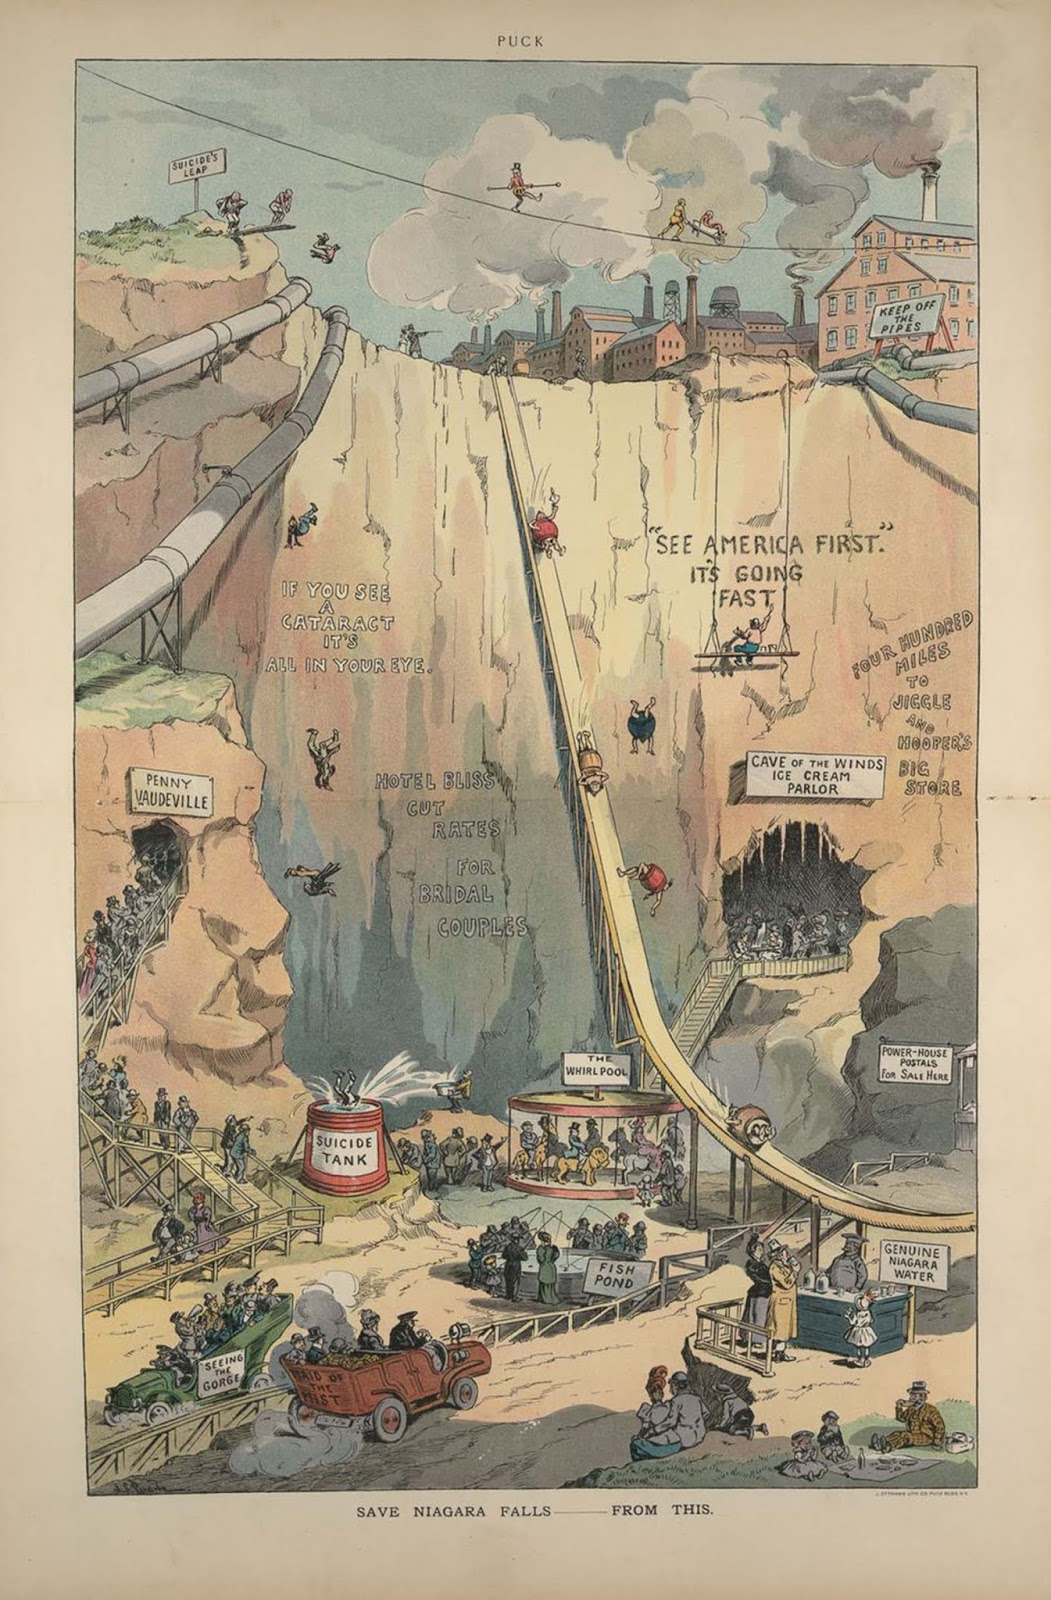 A satirical Puck illustration imagines the future of Niagara Falls. 1906.